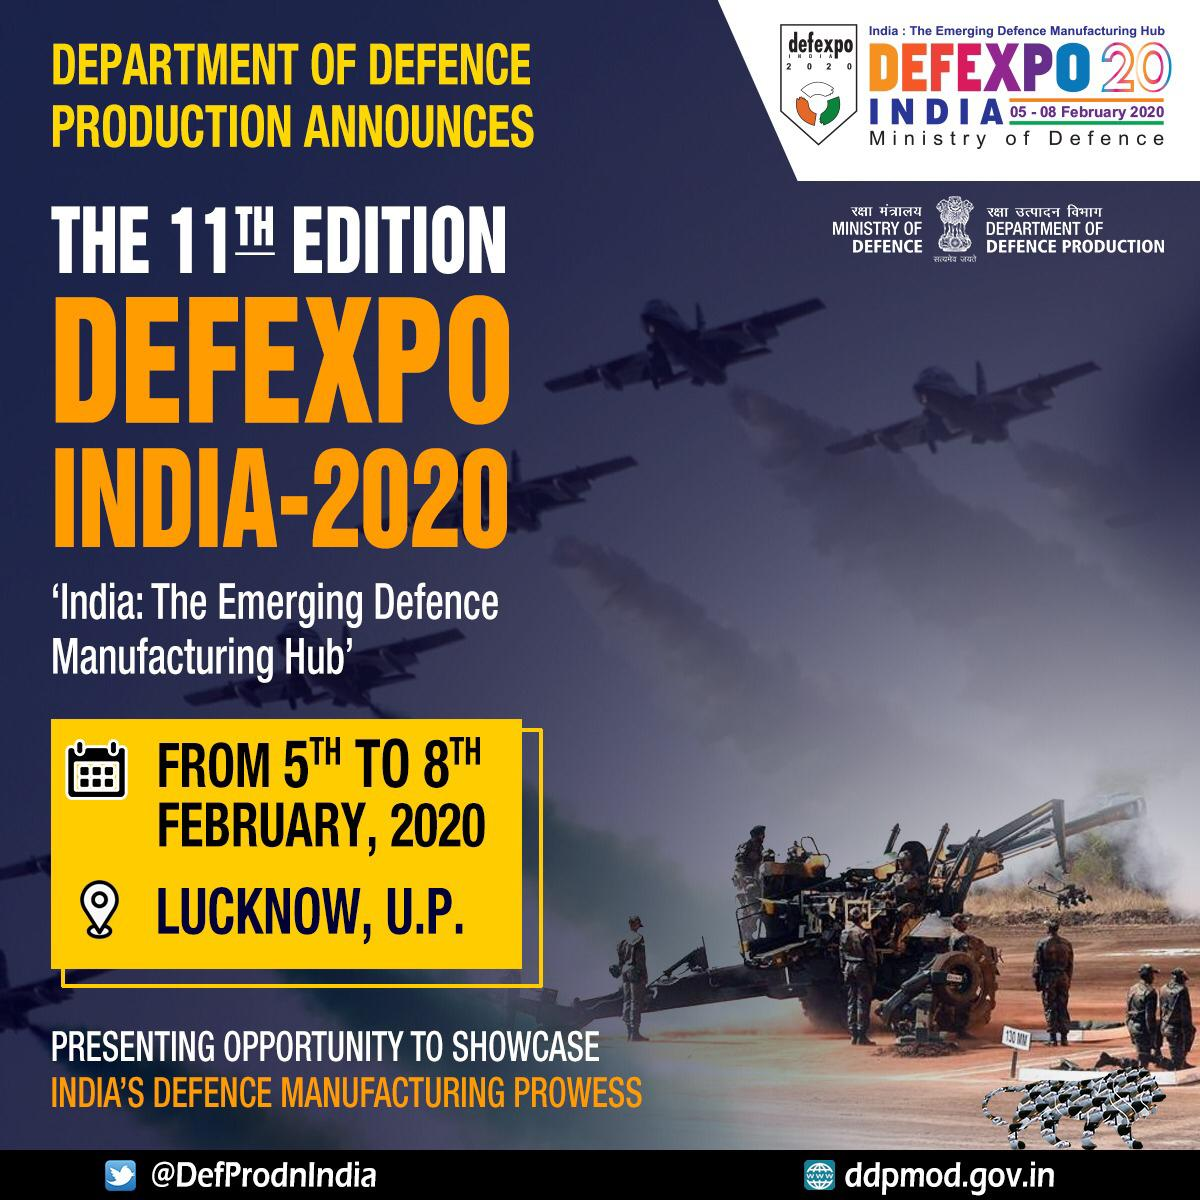 Lucknow to host Asia's biggest arms show 'DefExpo' in February 2020